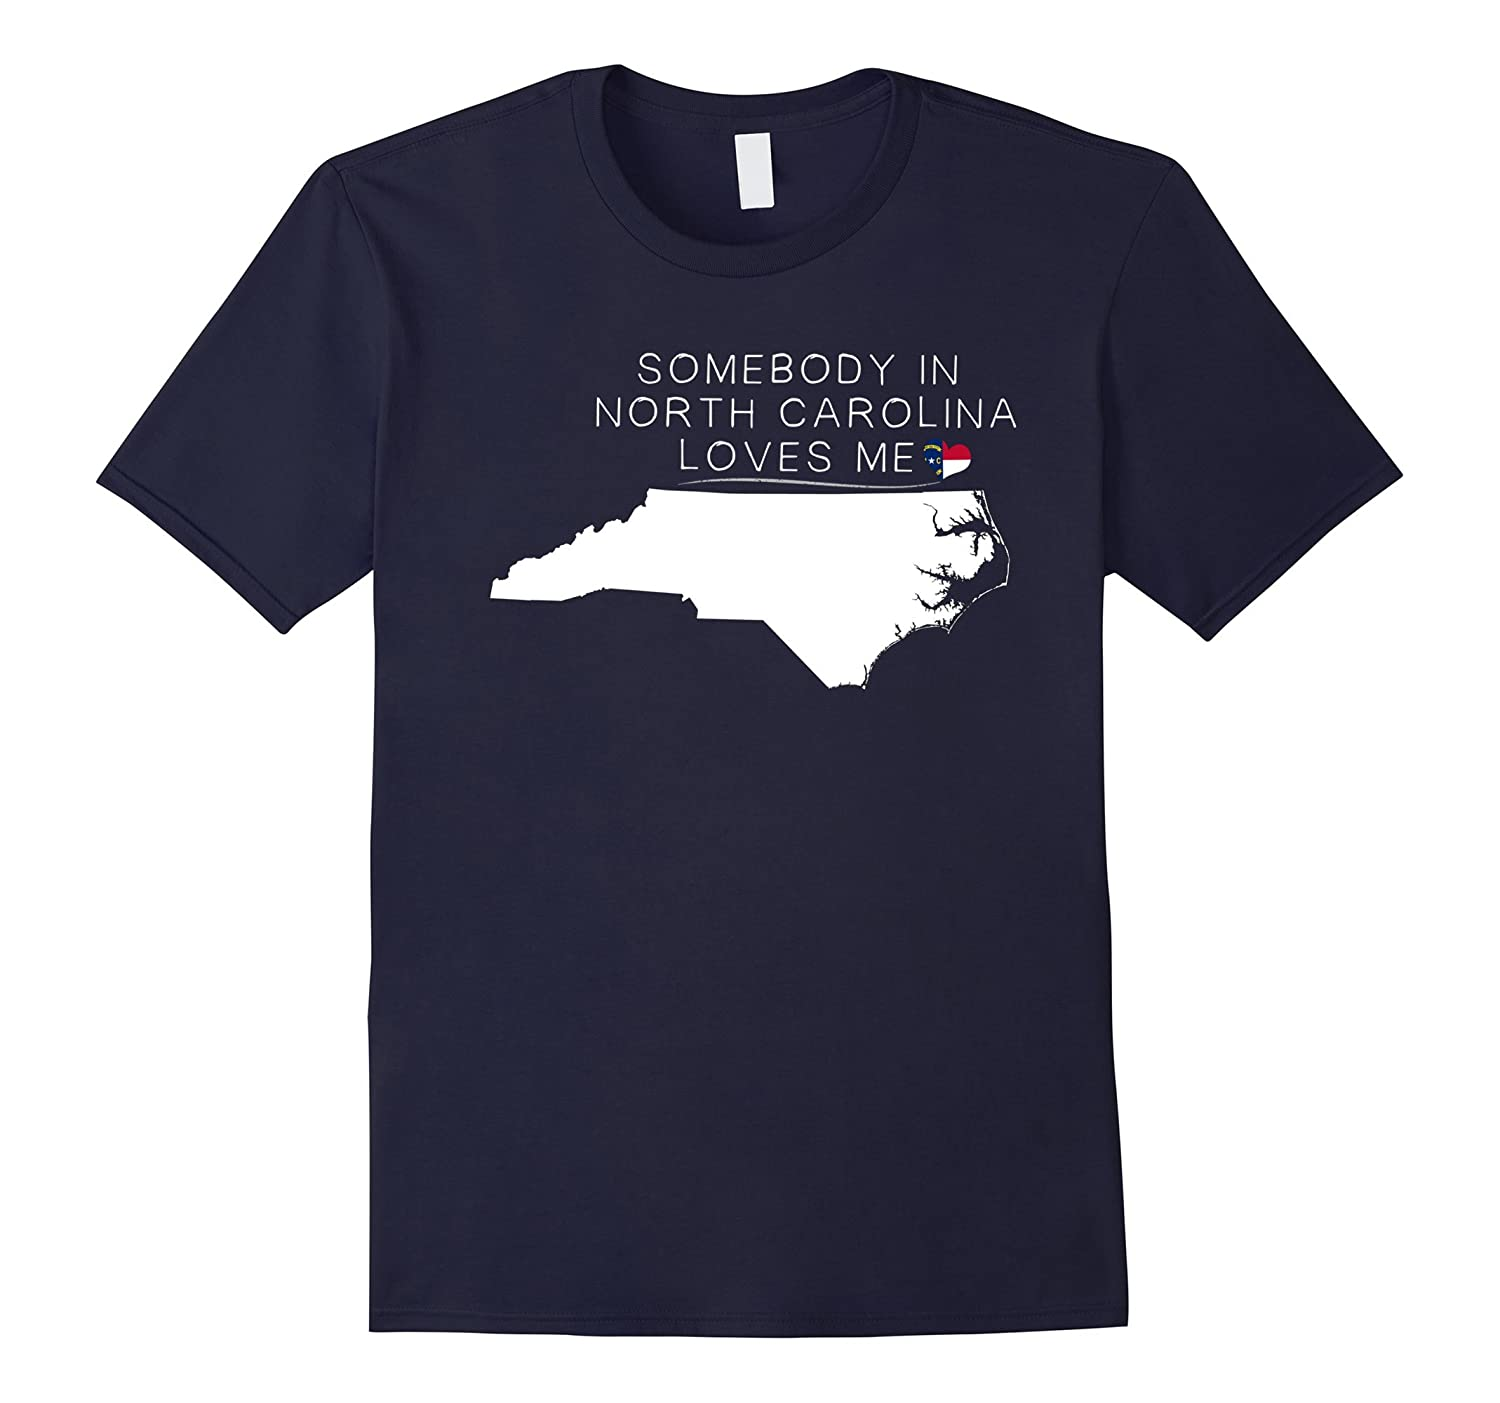 North Carolina T-shirt - Somebody in North Carolina loves me-Vaci